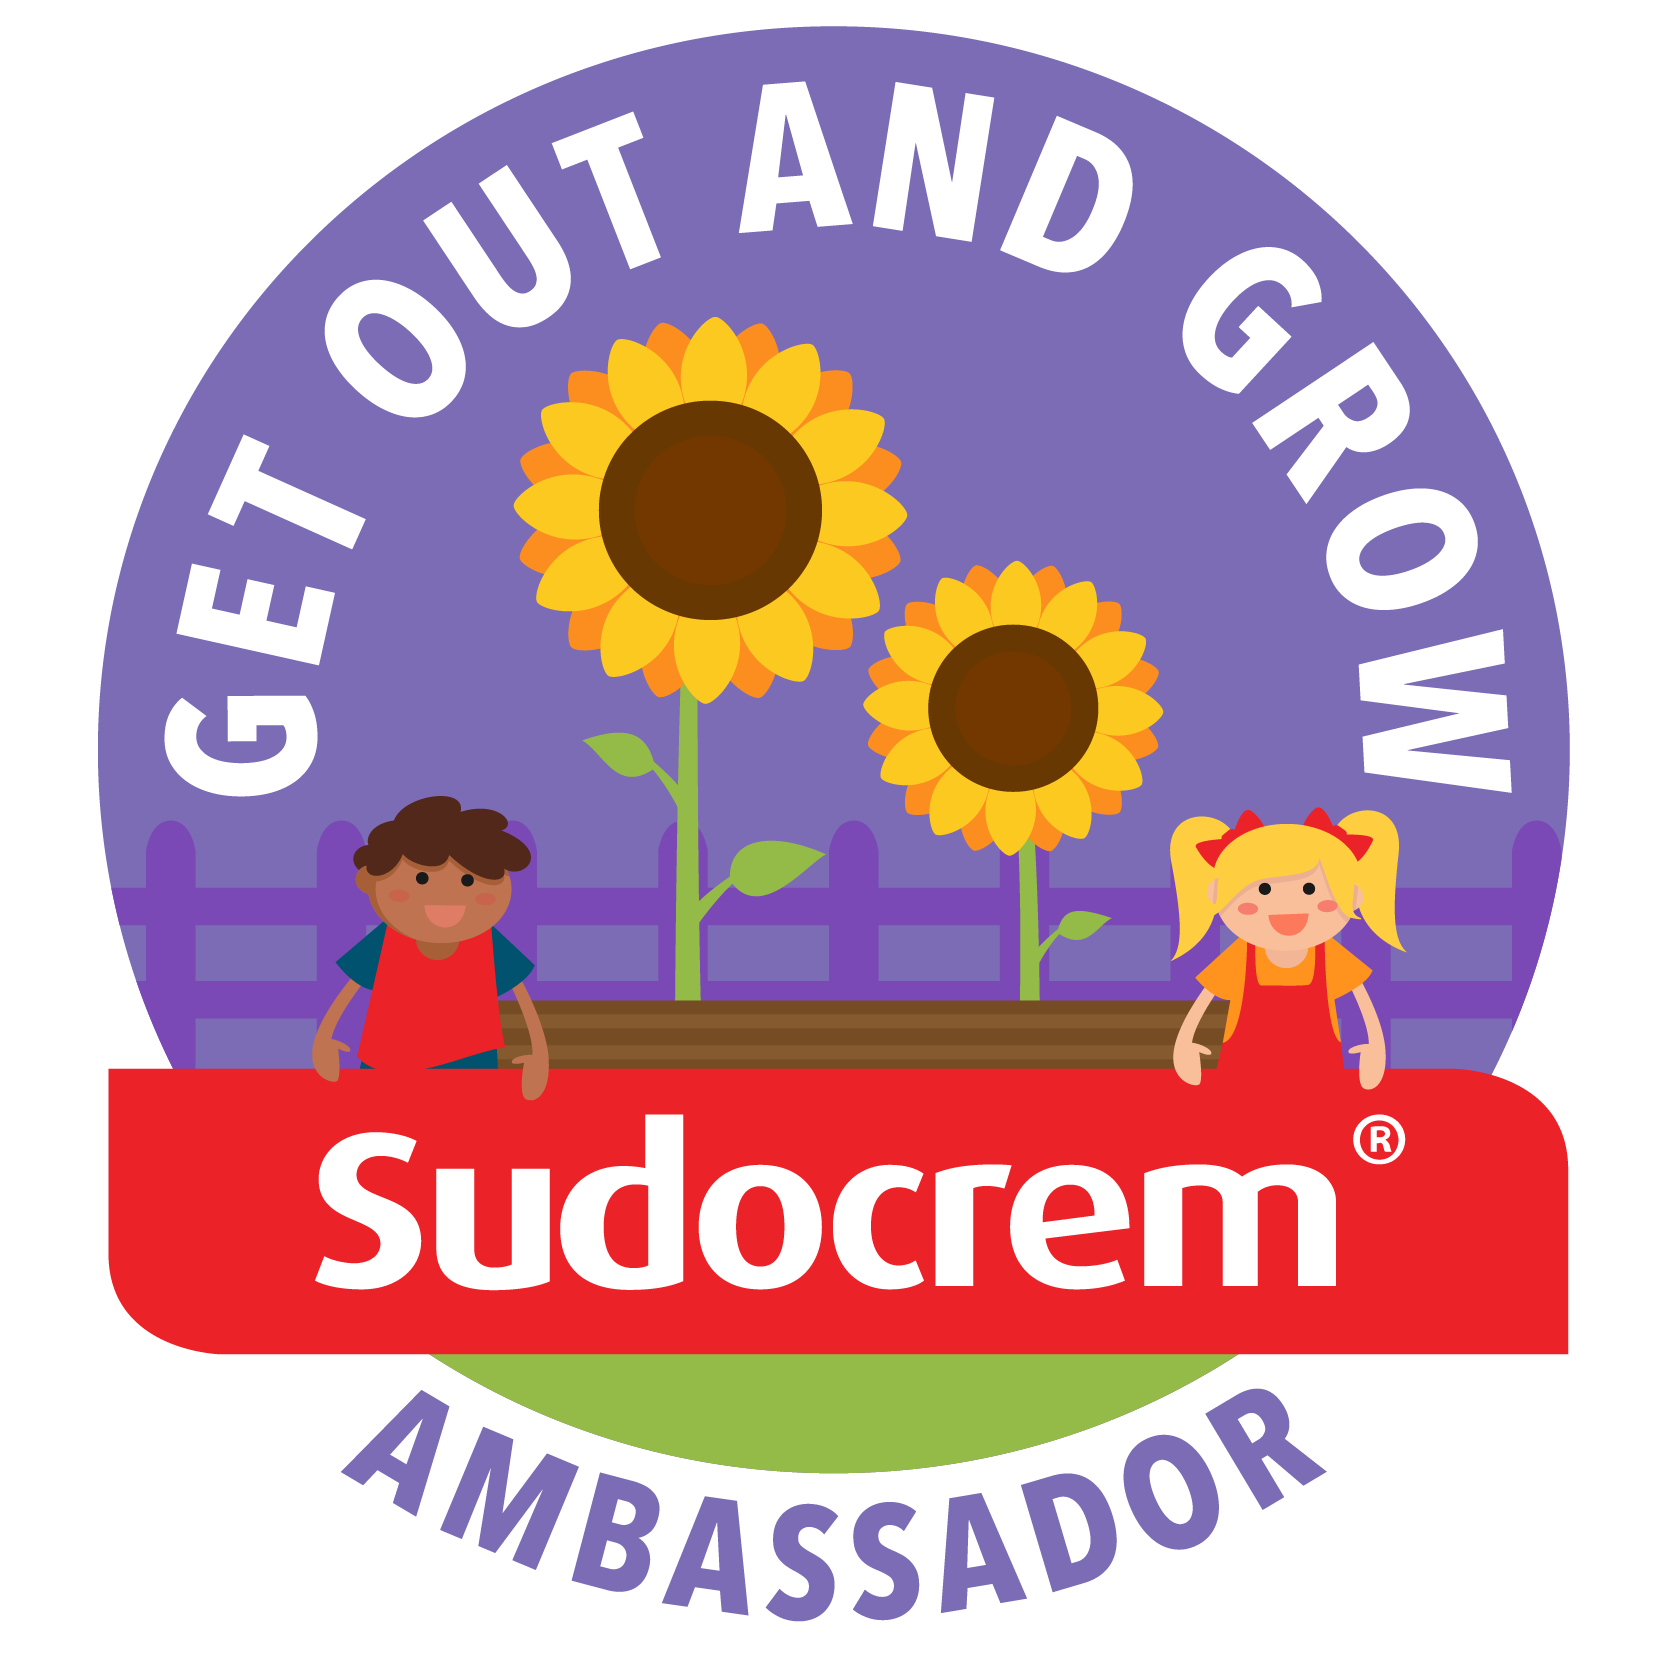 Sudocrem Get Out and Grow Ambassador